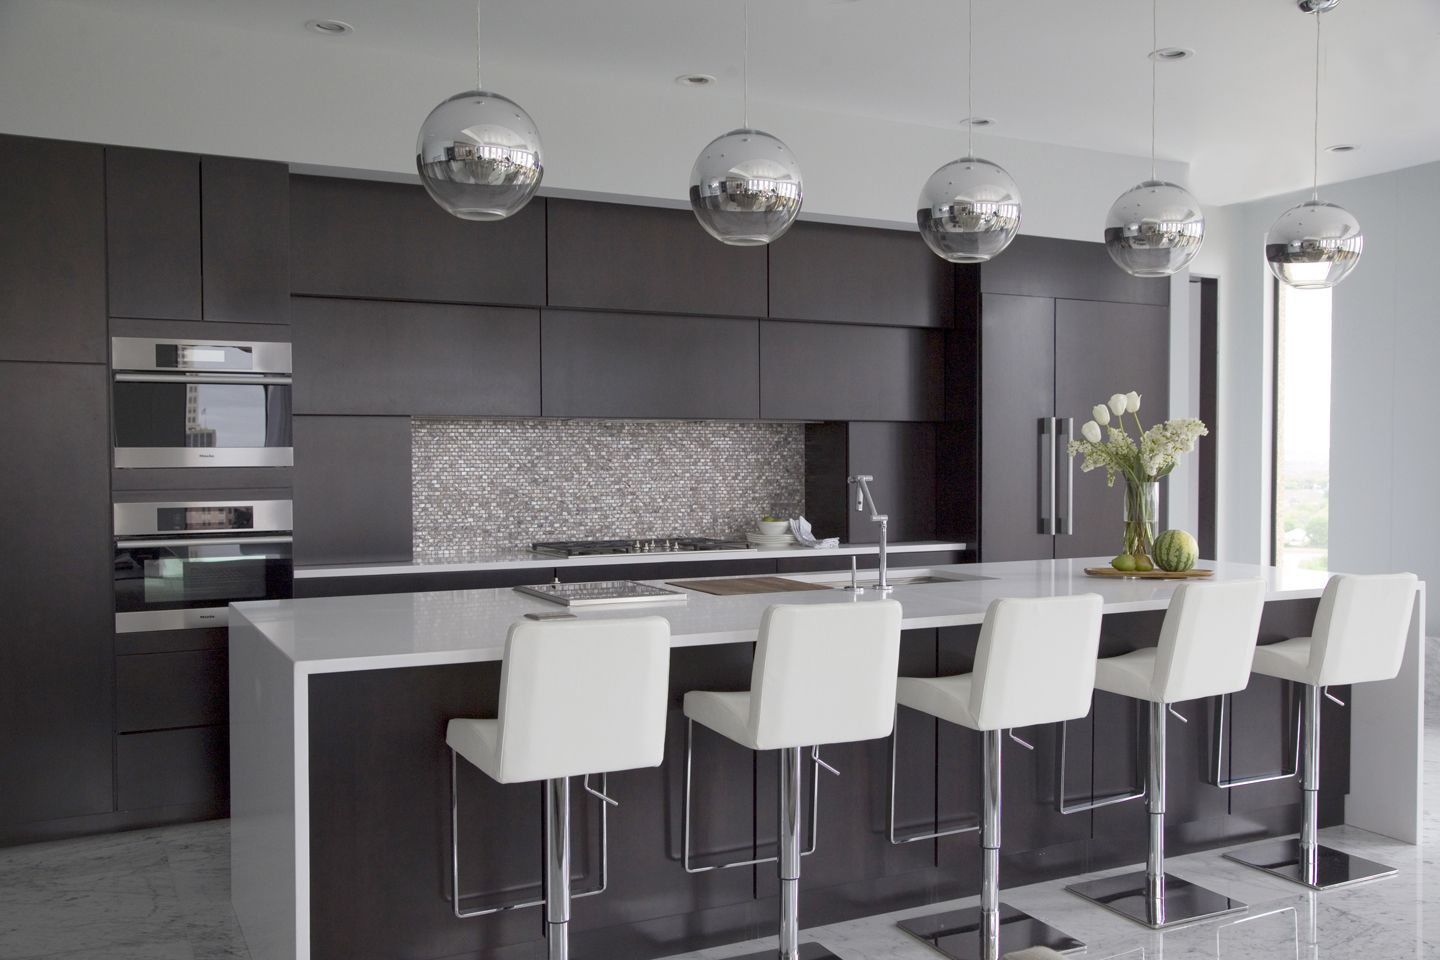 Küchenideen und designs kitchen  modern  kitchen  images by threshold goods design llc